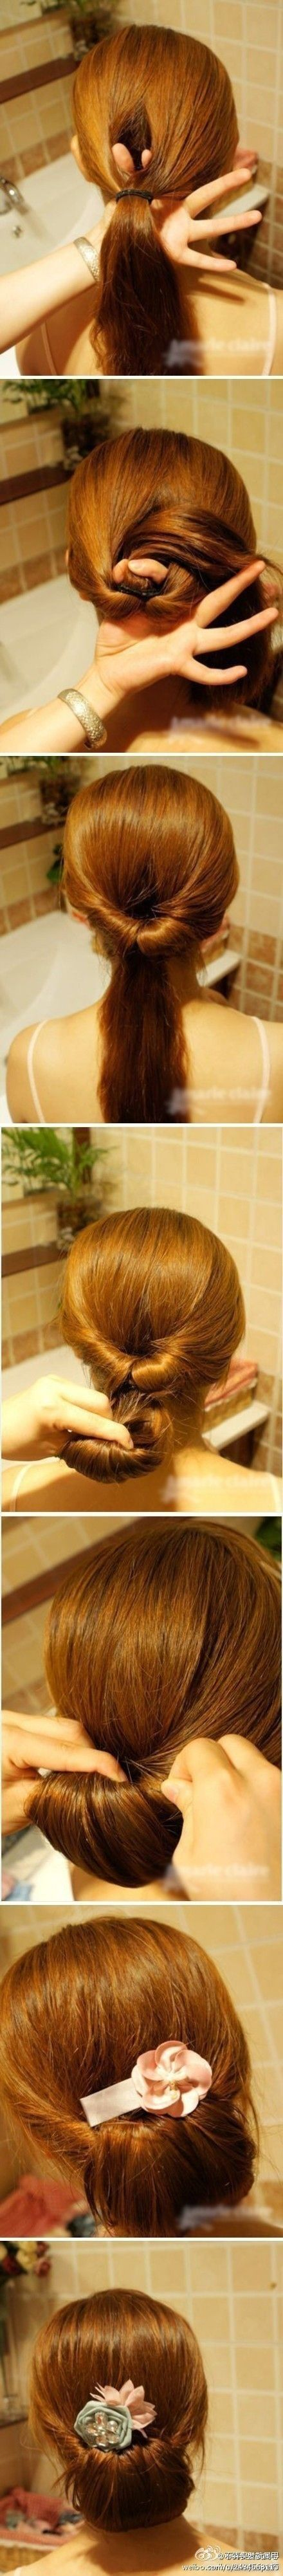 Cute bun: Hair Ideas, Hairstyles, Hairdos, Hair Styles, Makeup, Hair Tutorial, Hair Do, Updos, Easy Updo